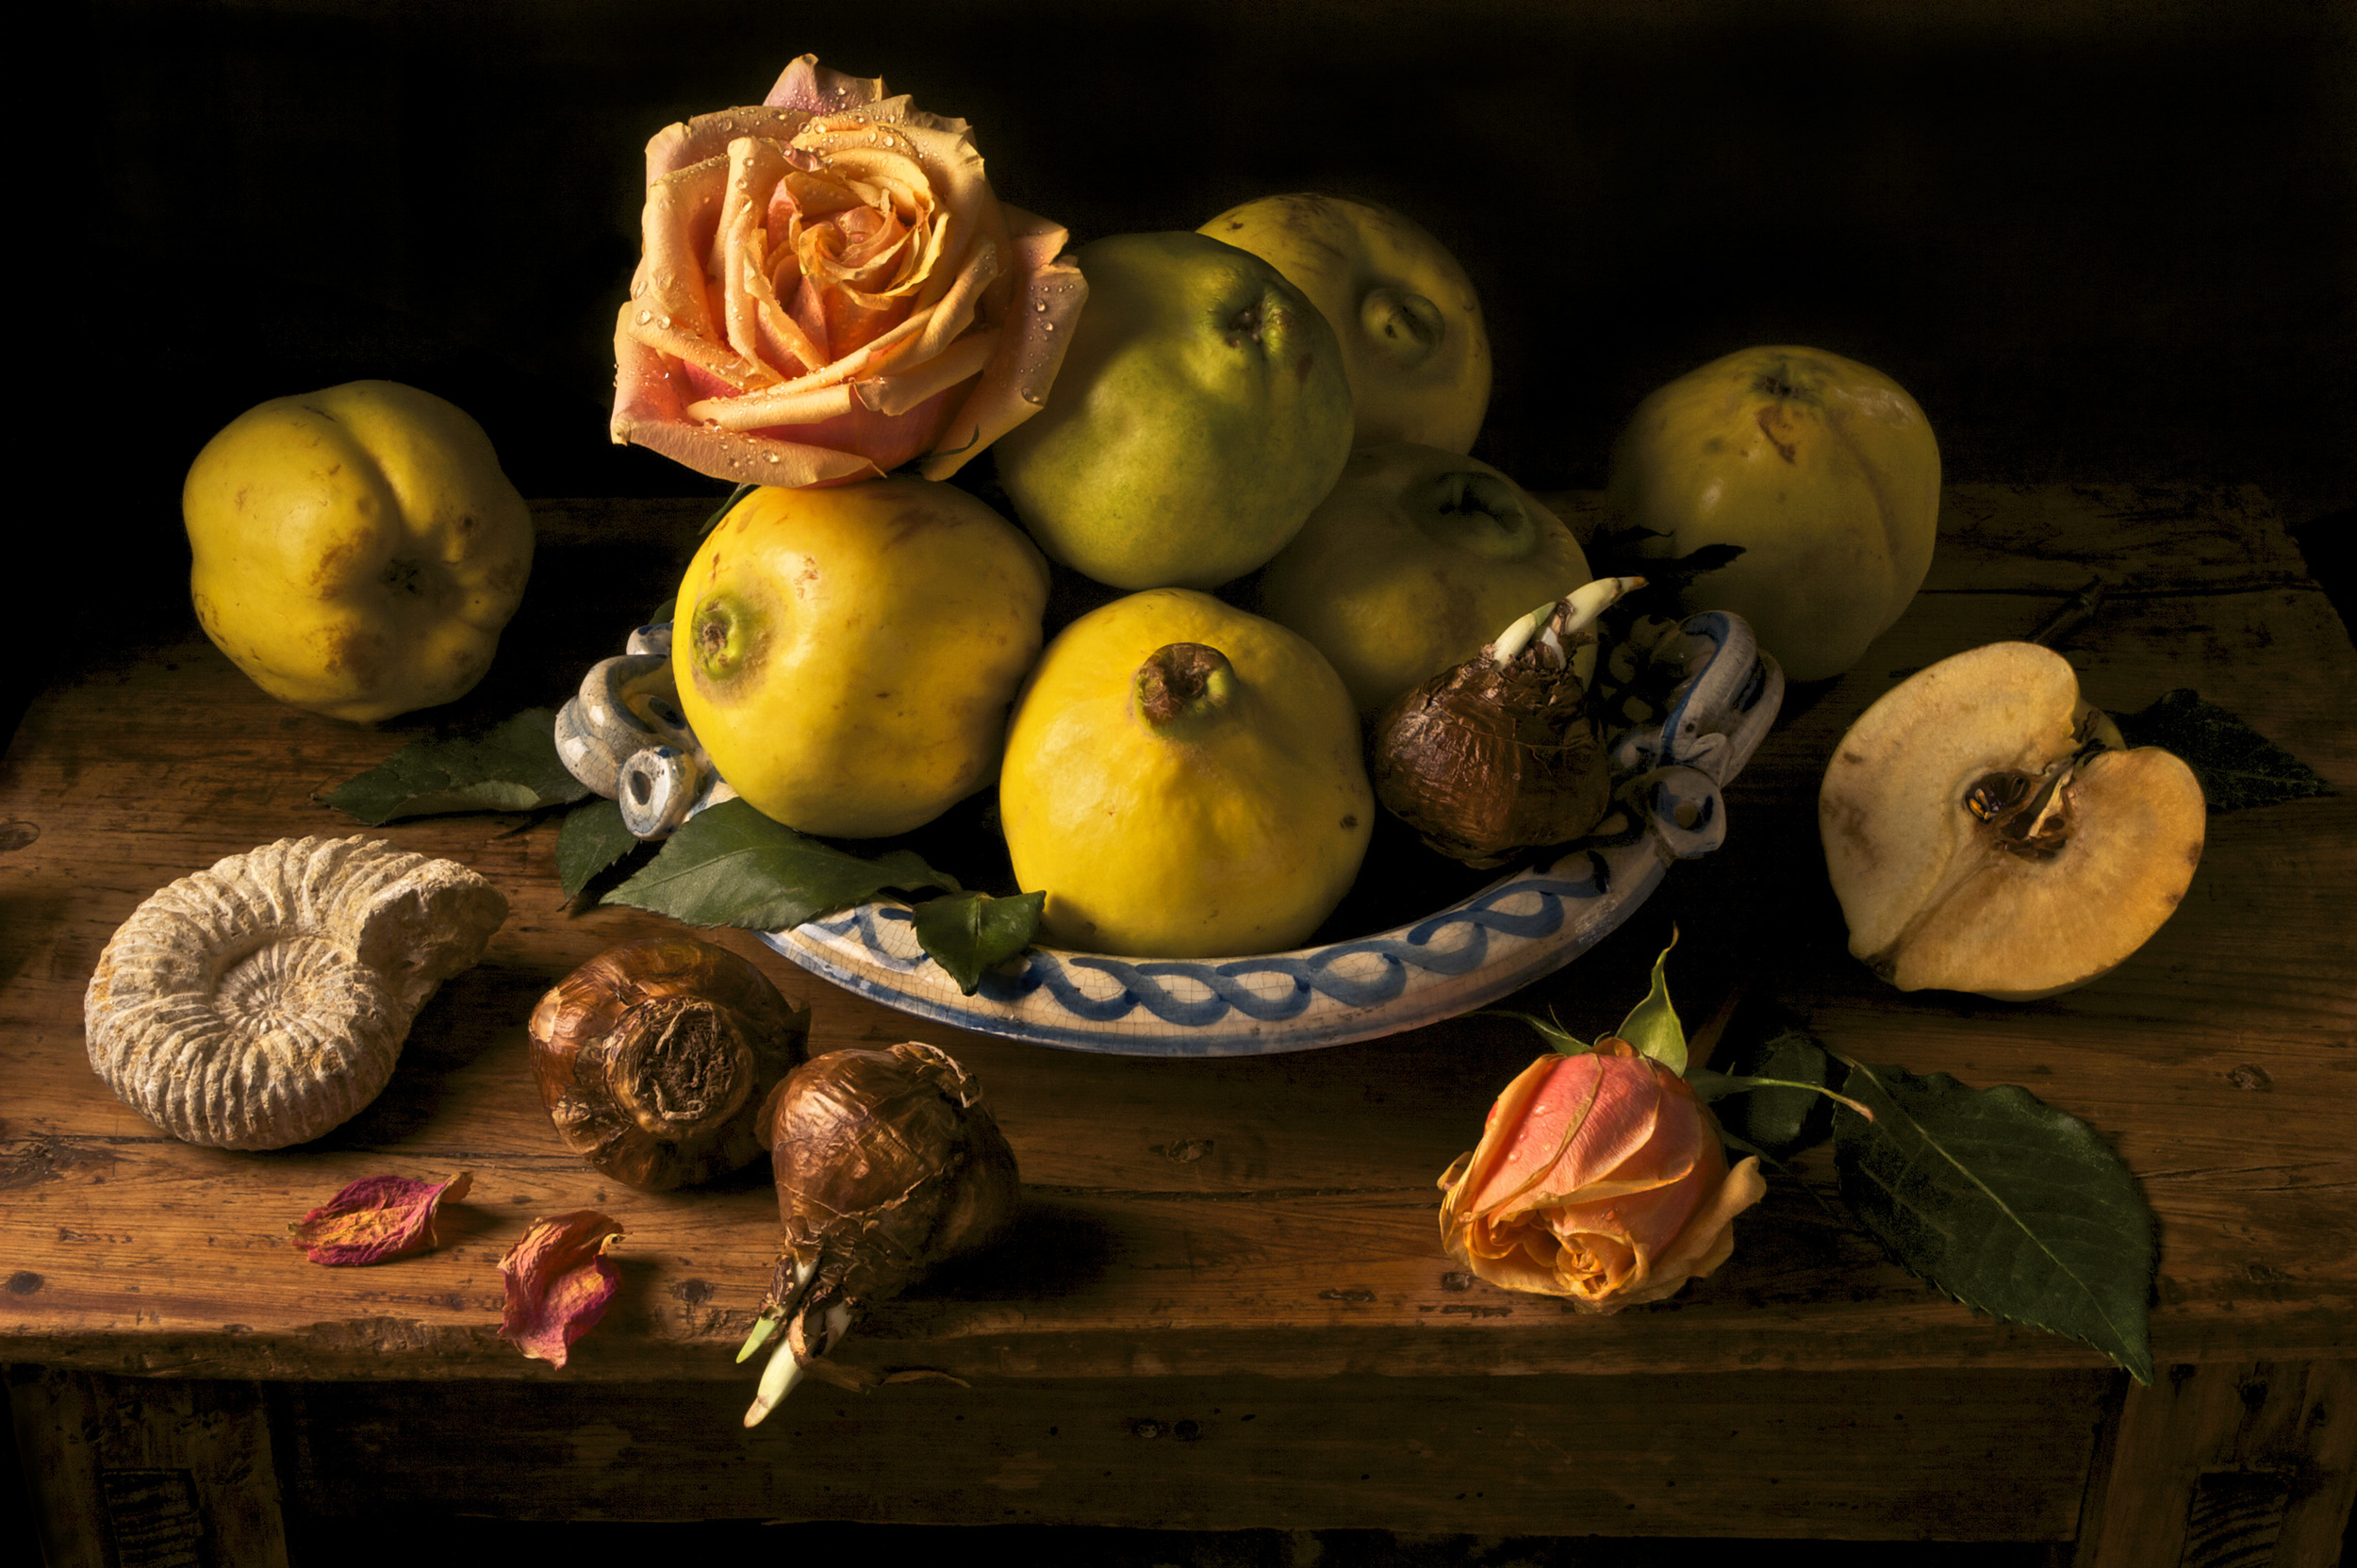 Quince, After G.G., 2008